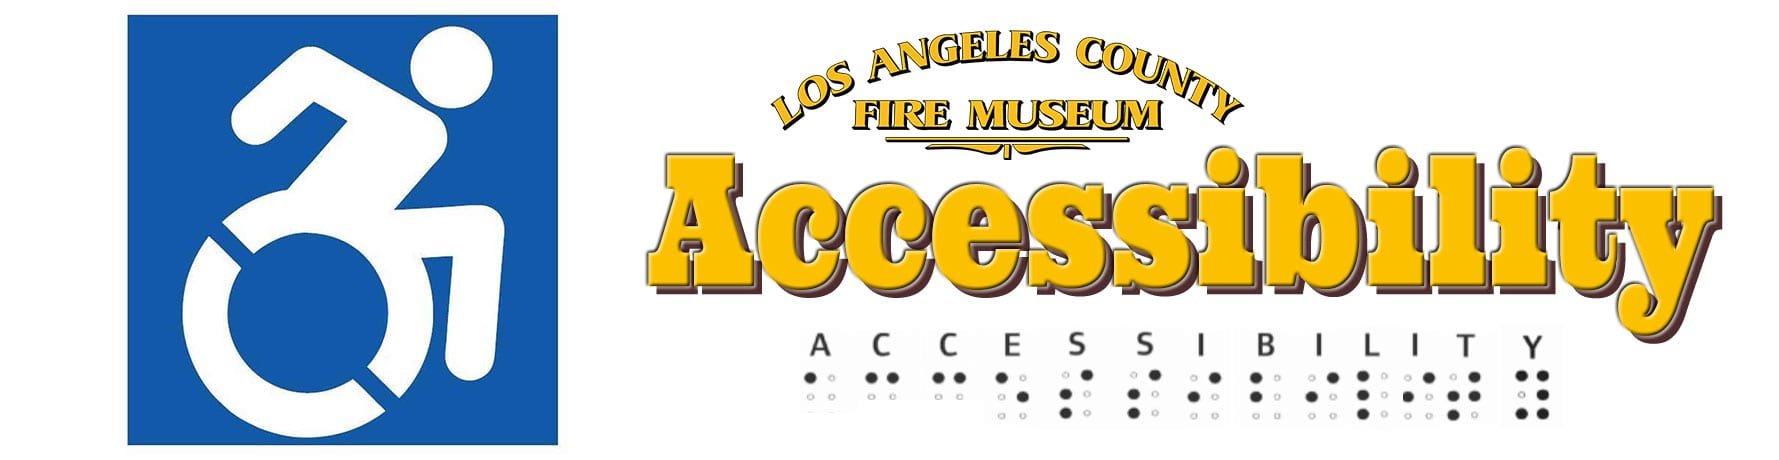 Los Angeles County Fire Museum Accessibility